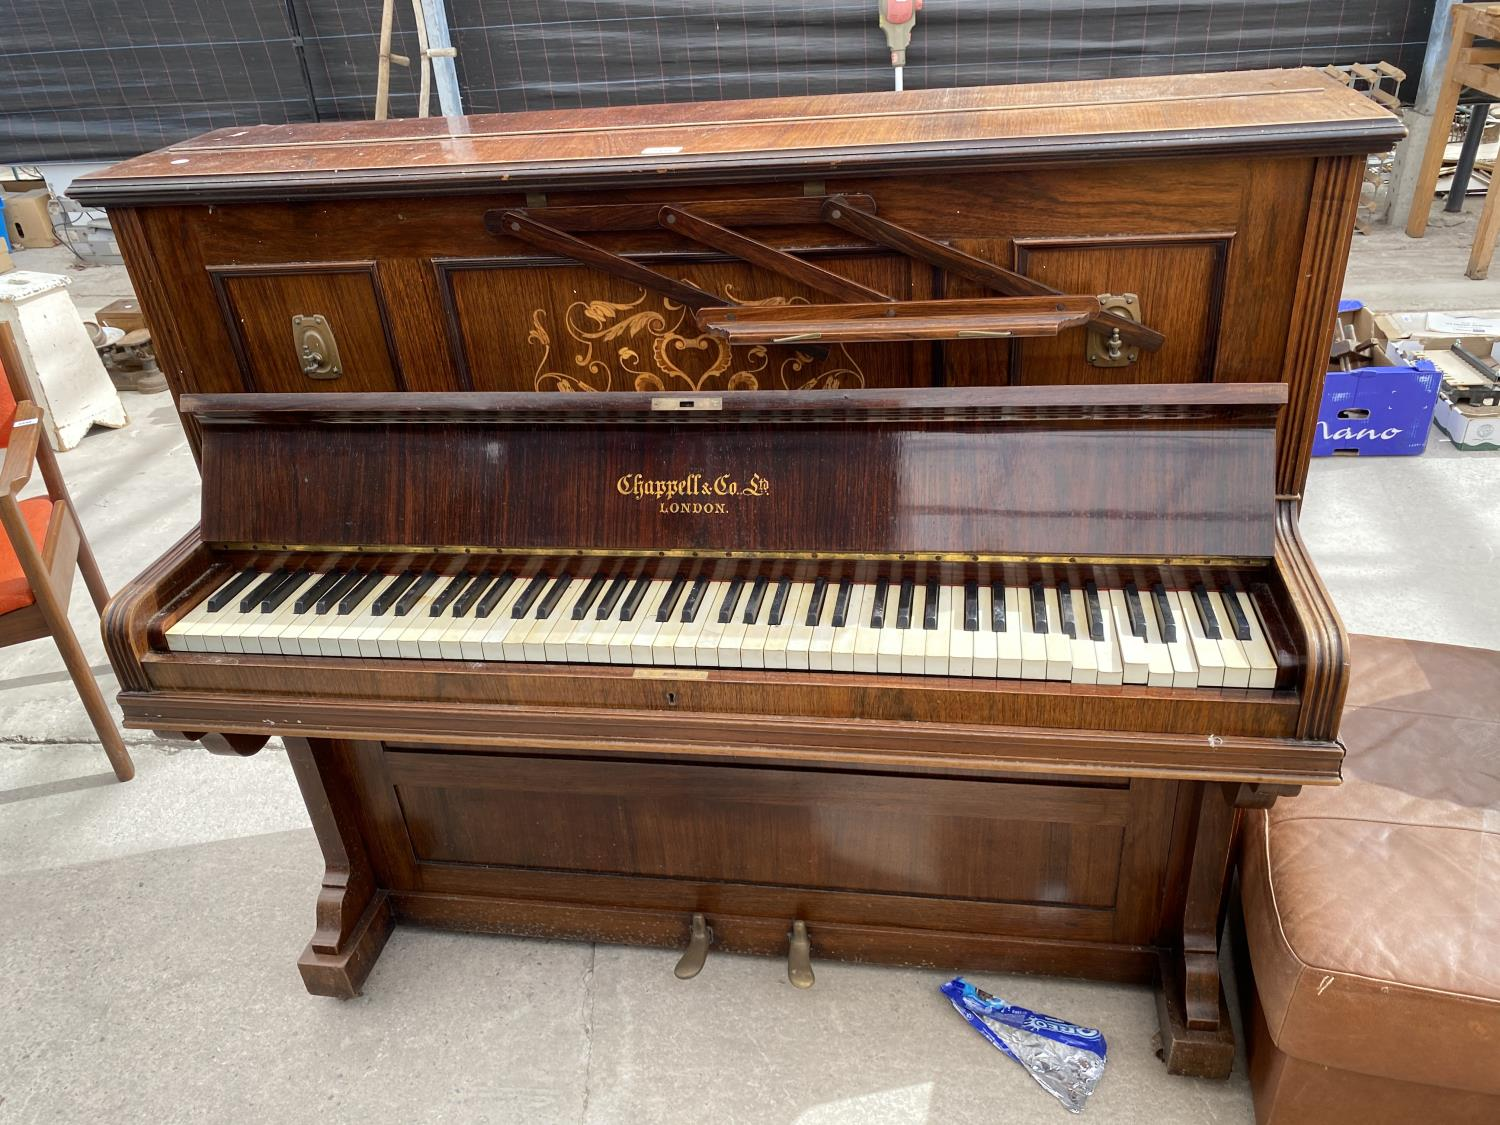 A CHAPPELL & CO LTD UPRIGHT PIANO STAMPED HARTSON & SON, NEWARK